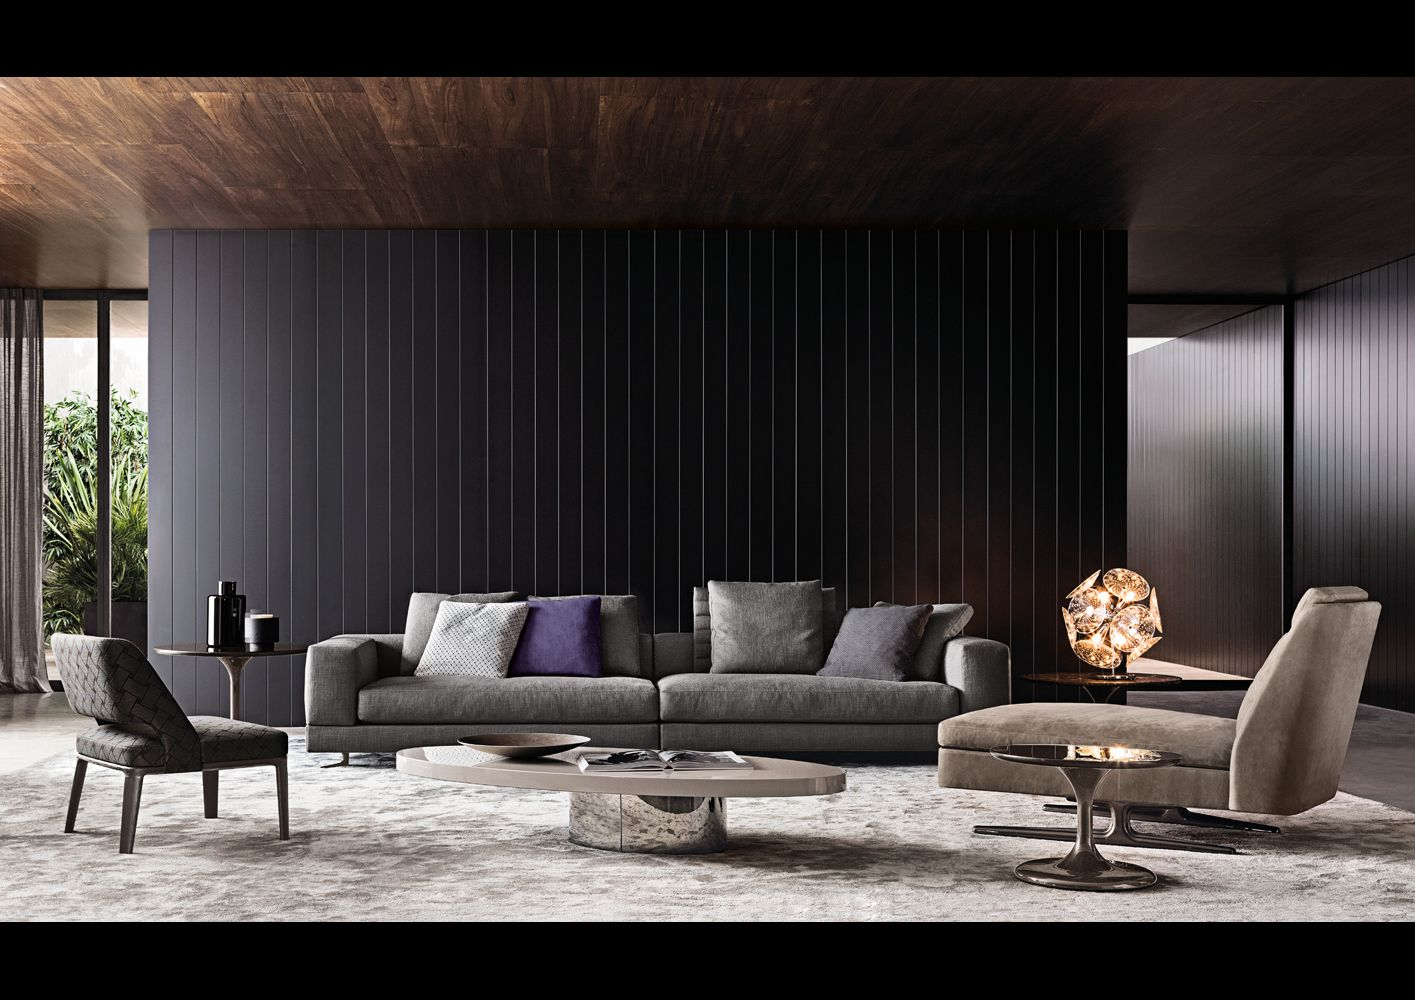 Mobili minotti ~ Minotti freeman sofa possible floor plan minotti